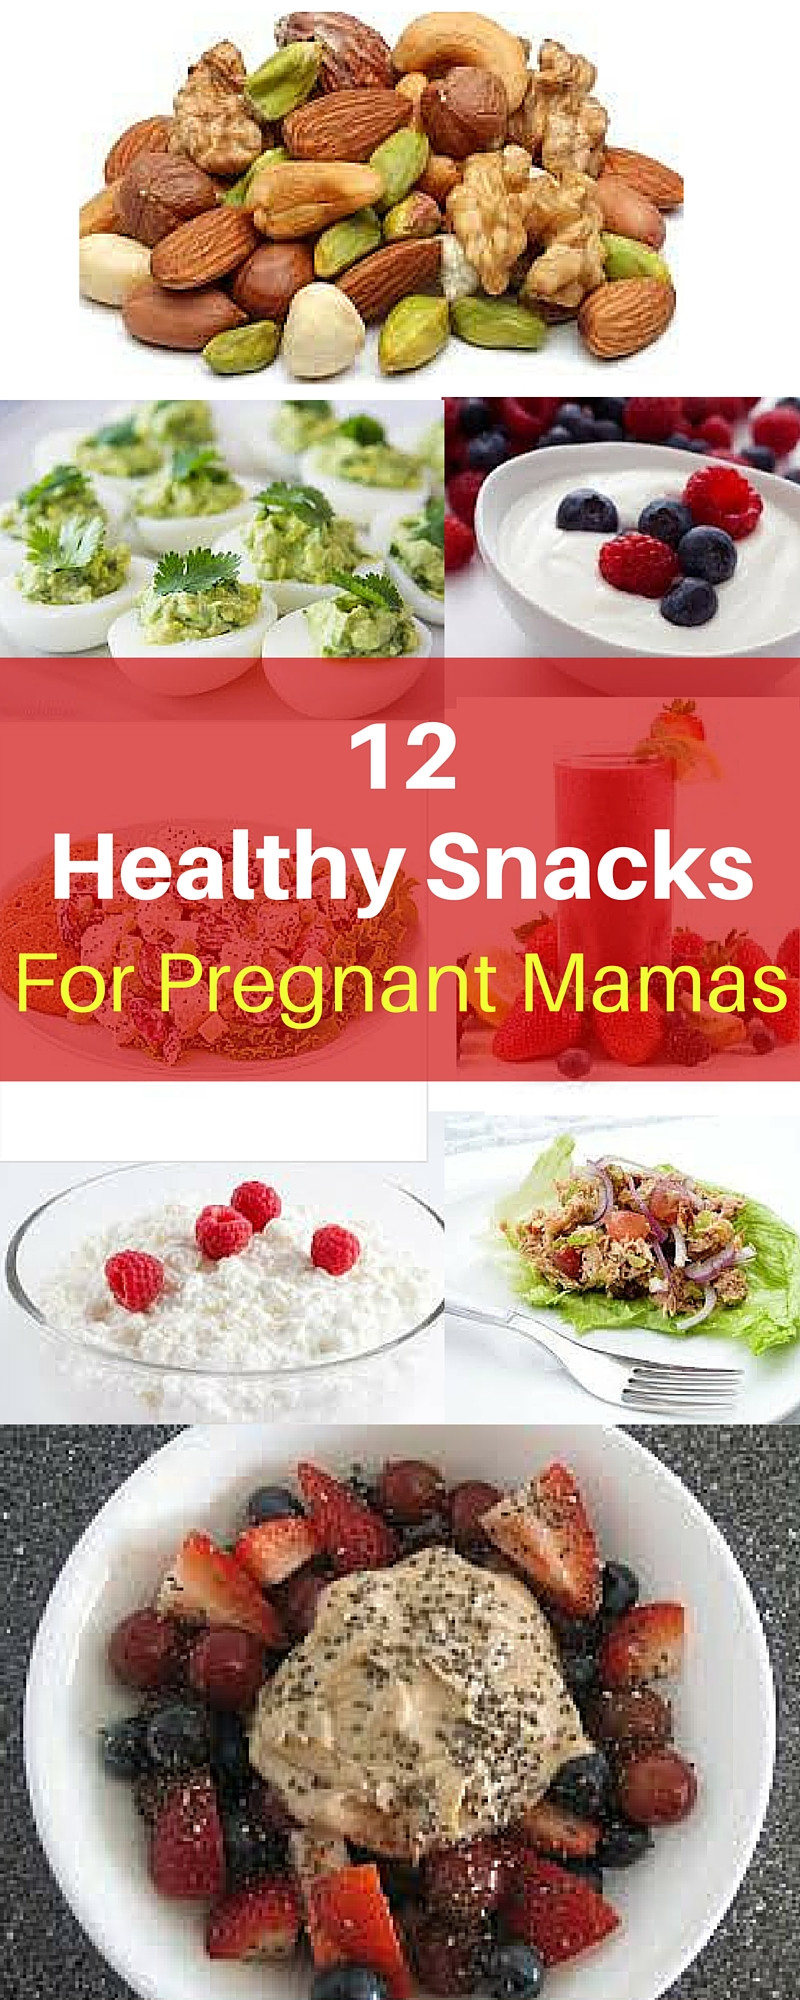 Healthy Snacks For Pregnant Women  10 Healthy Snacks For Pregnant Mamas Michelle Marie Fit